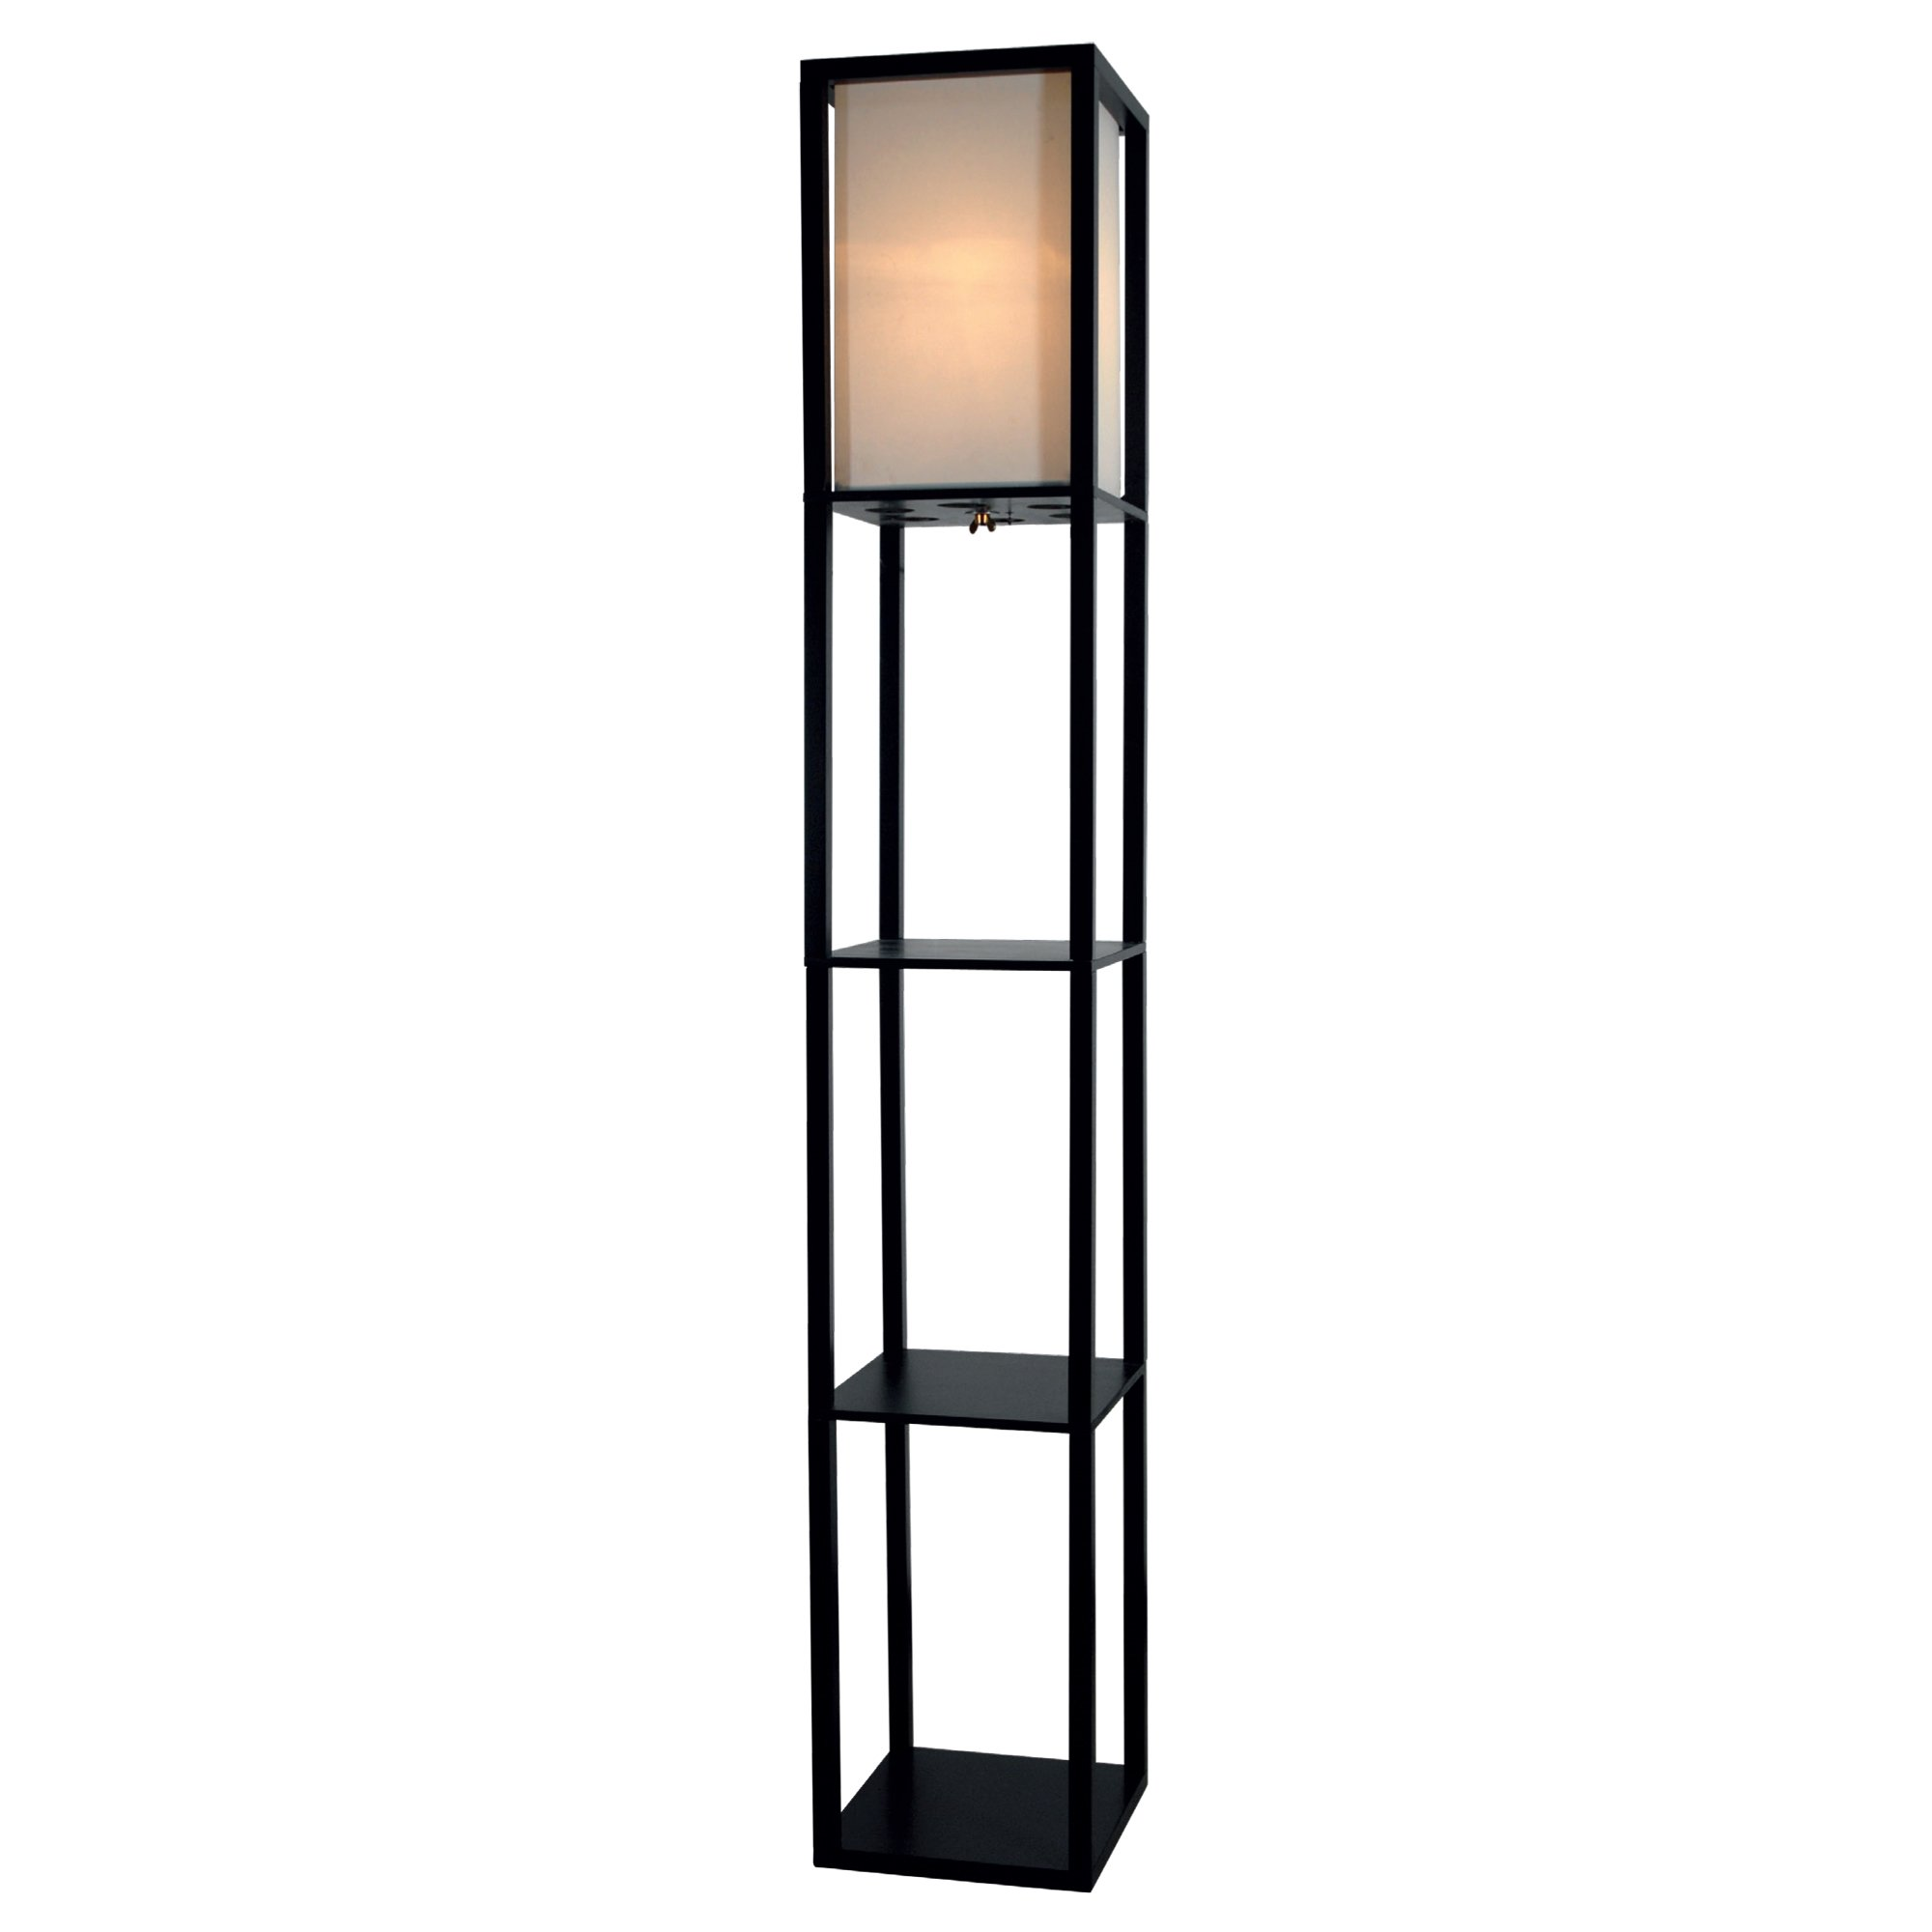 Bookshelf lamp amazon light accents floor lamp 3 shelf standing lamp 63 tall wood with white linen shade aloadofball Images